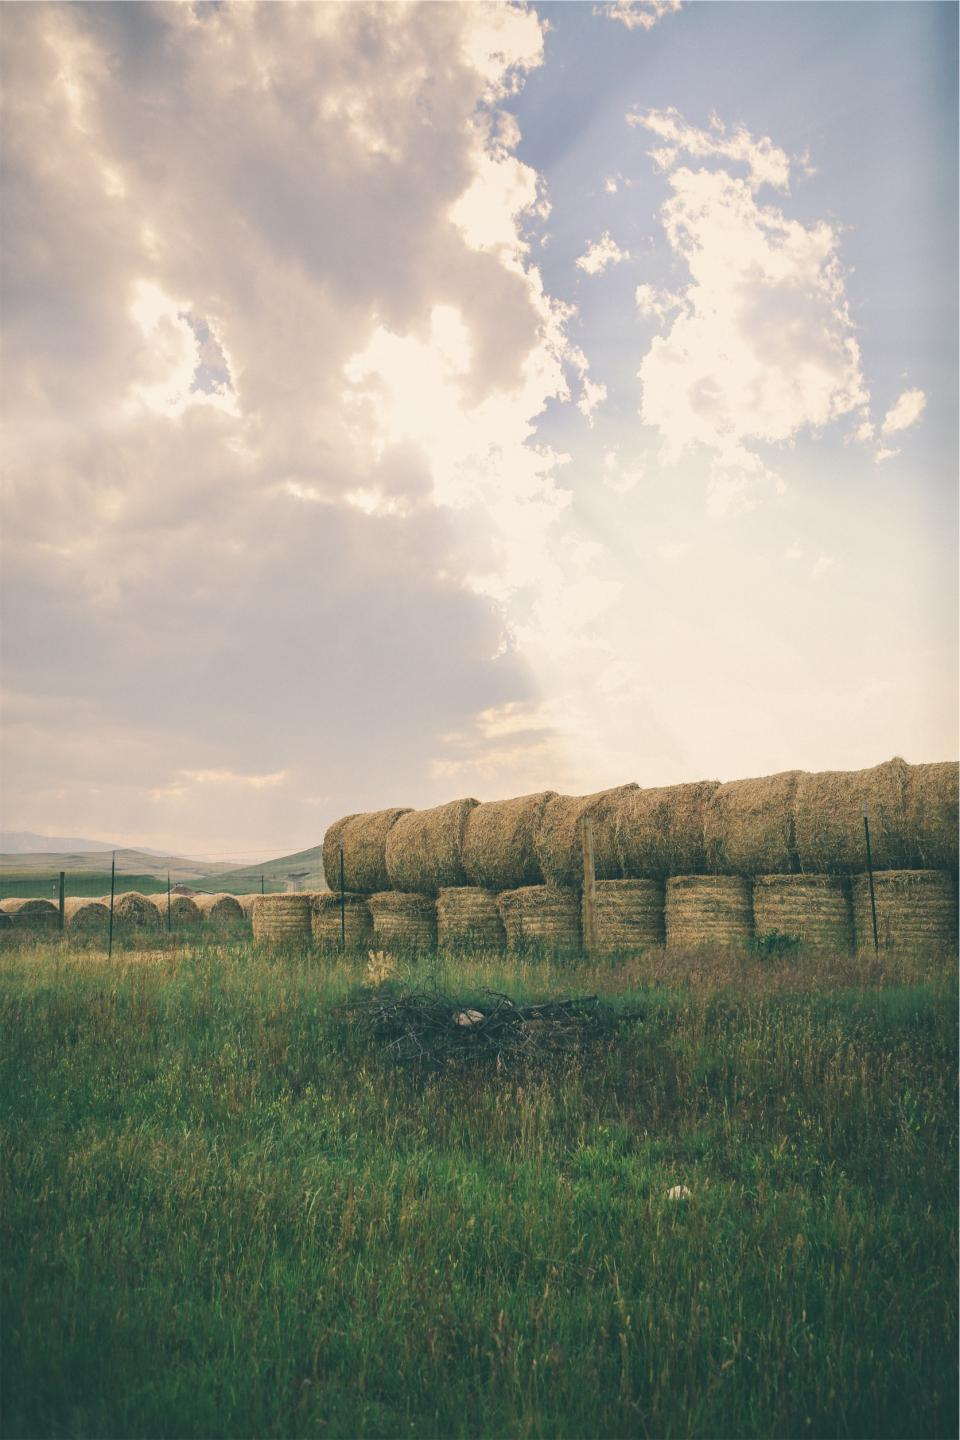 hay, bales, grass, farm, fields, rural, country